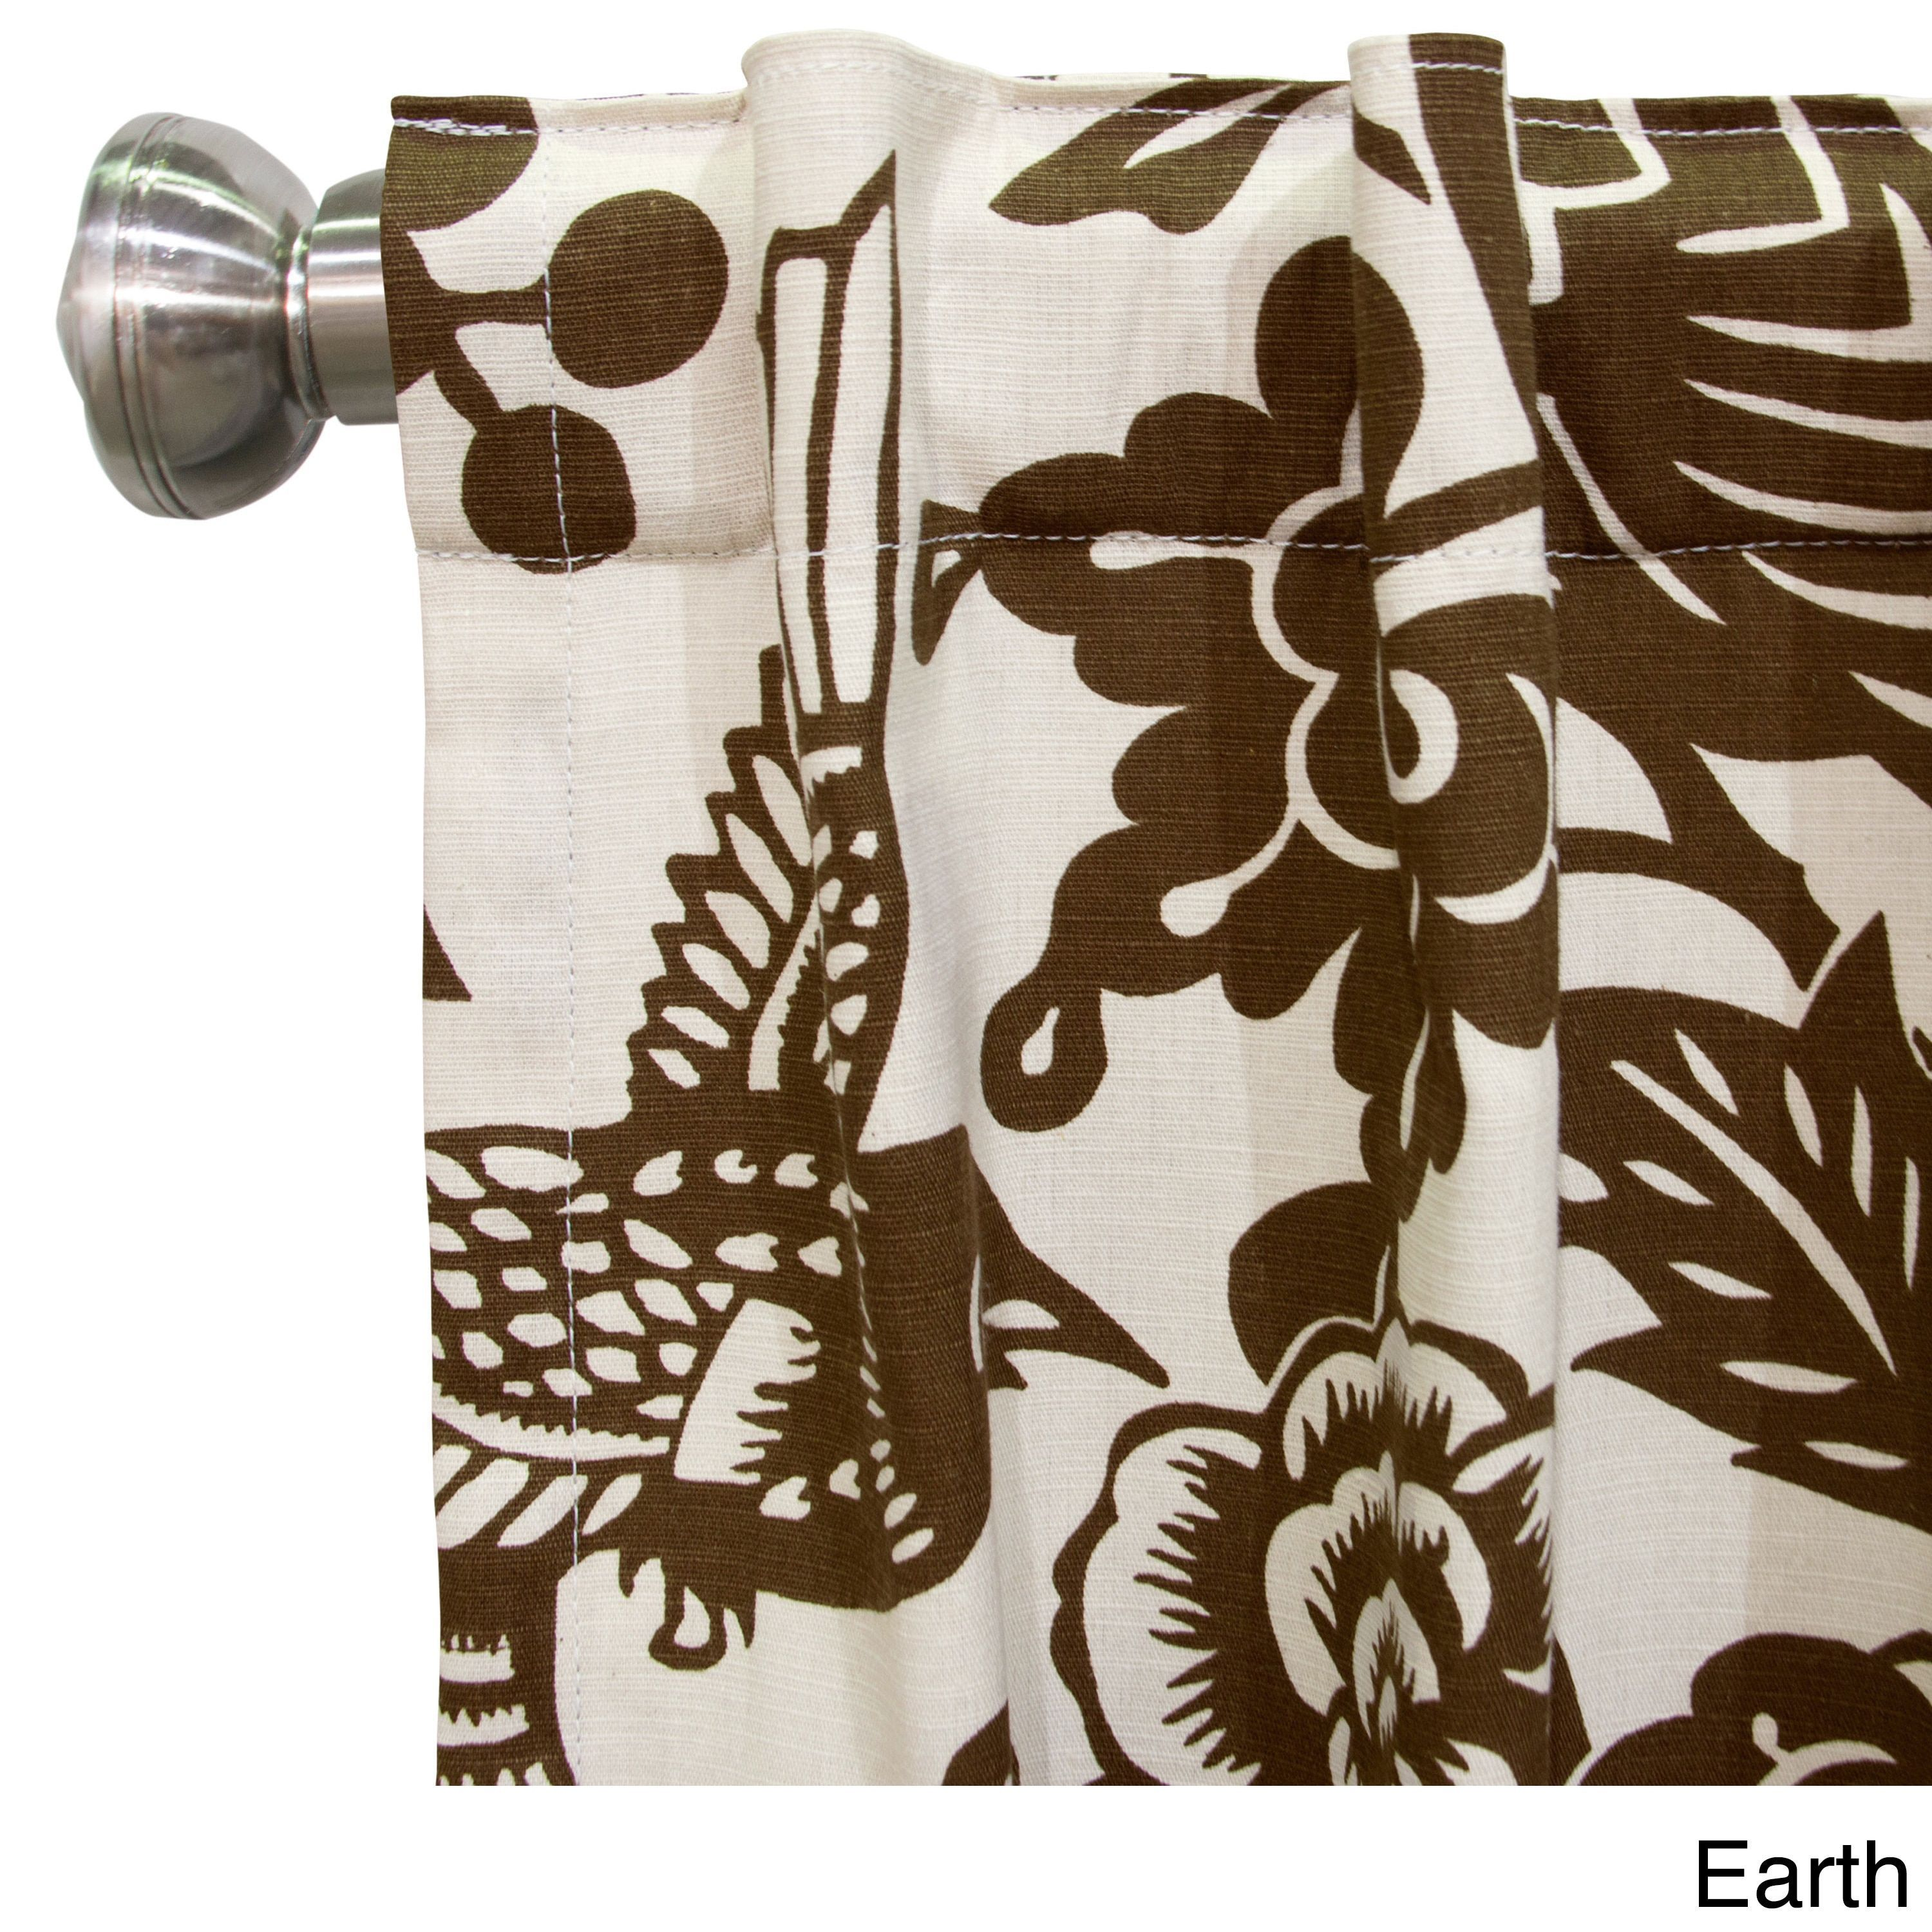 Skyline Furniture Canary Window Curtain Panel (Canary Earth, 120), Brown, Size 50 x 120 (Cotton, Animal Print)